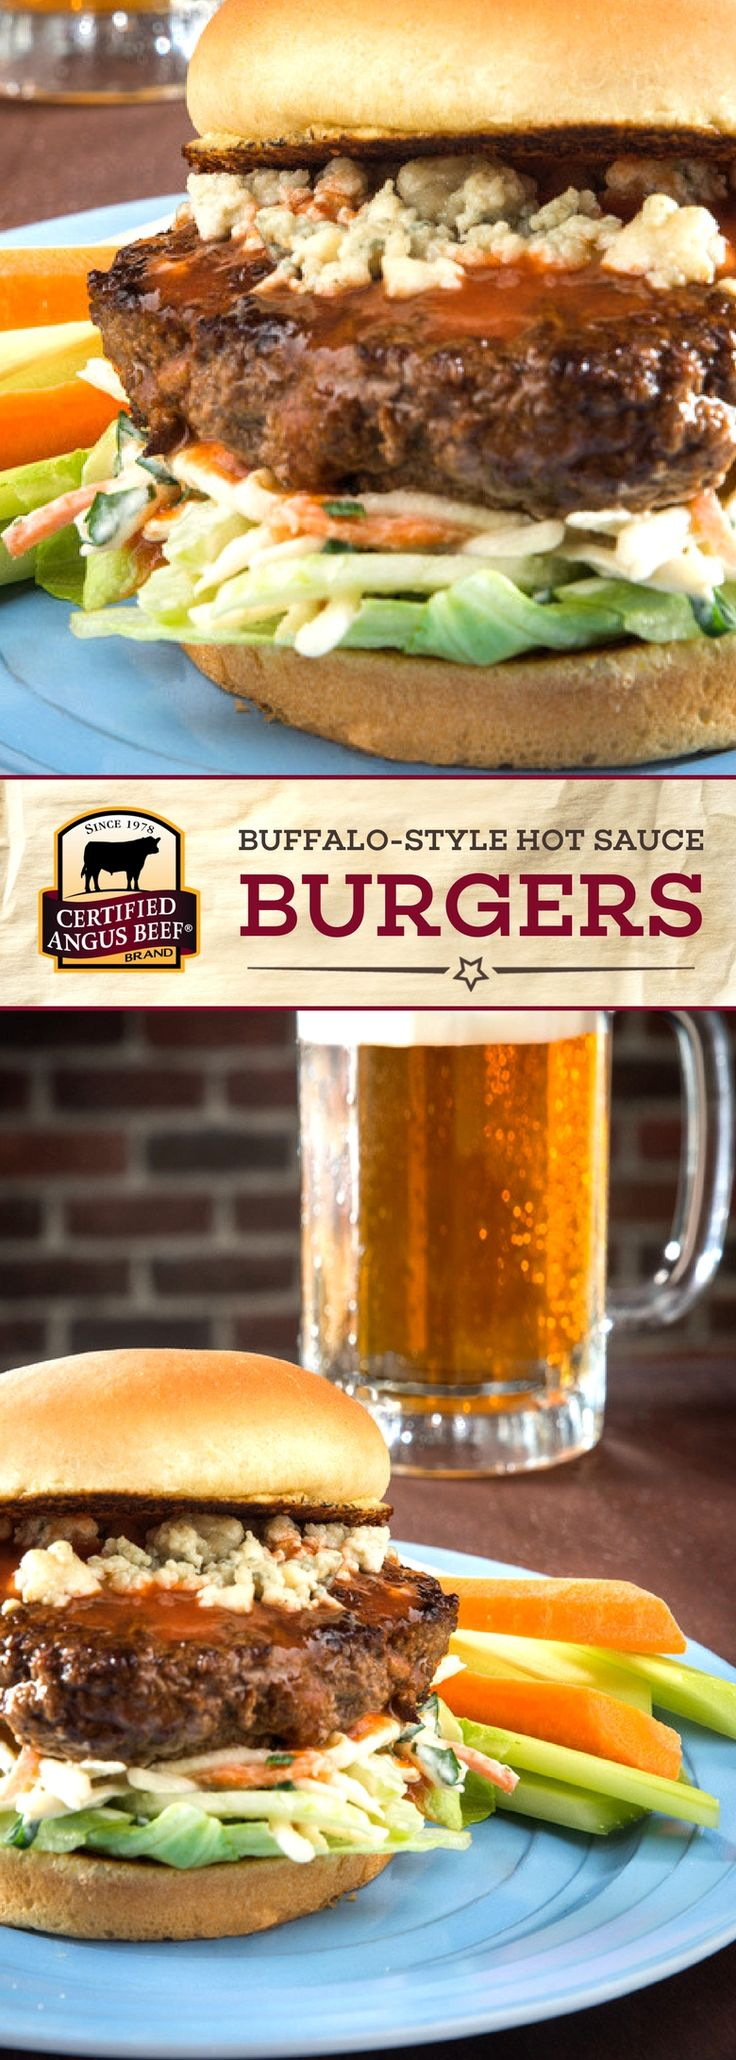 Certified Angus Beef®️️️ brand Buffalo-style Hot Sauce Burgers are truly DELICIOUS! Made with the best ground chuck, hot sauce, and the perfect blend of spices, then topped with blue cheese, these burgers are so TASTY! Perfect for game day. #bestangusbeef #certifiedangusbeef #beefrecipe #burgertime #gamedayrecipes